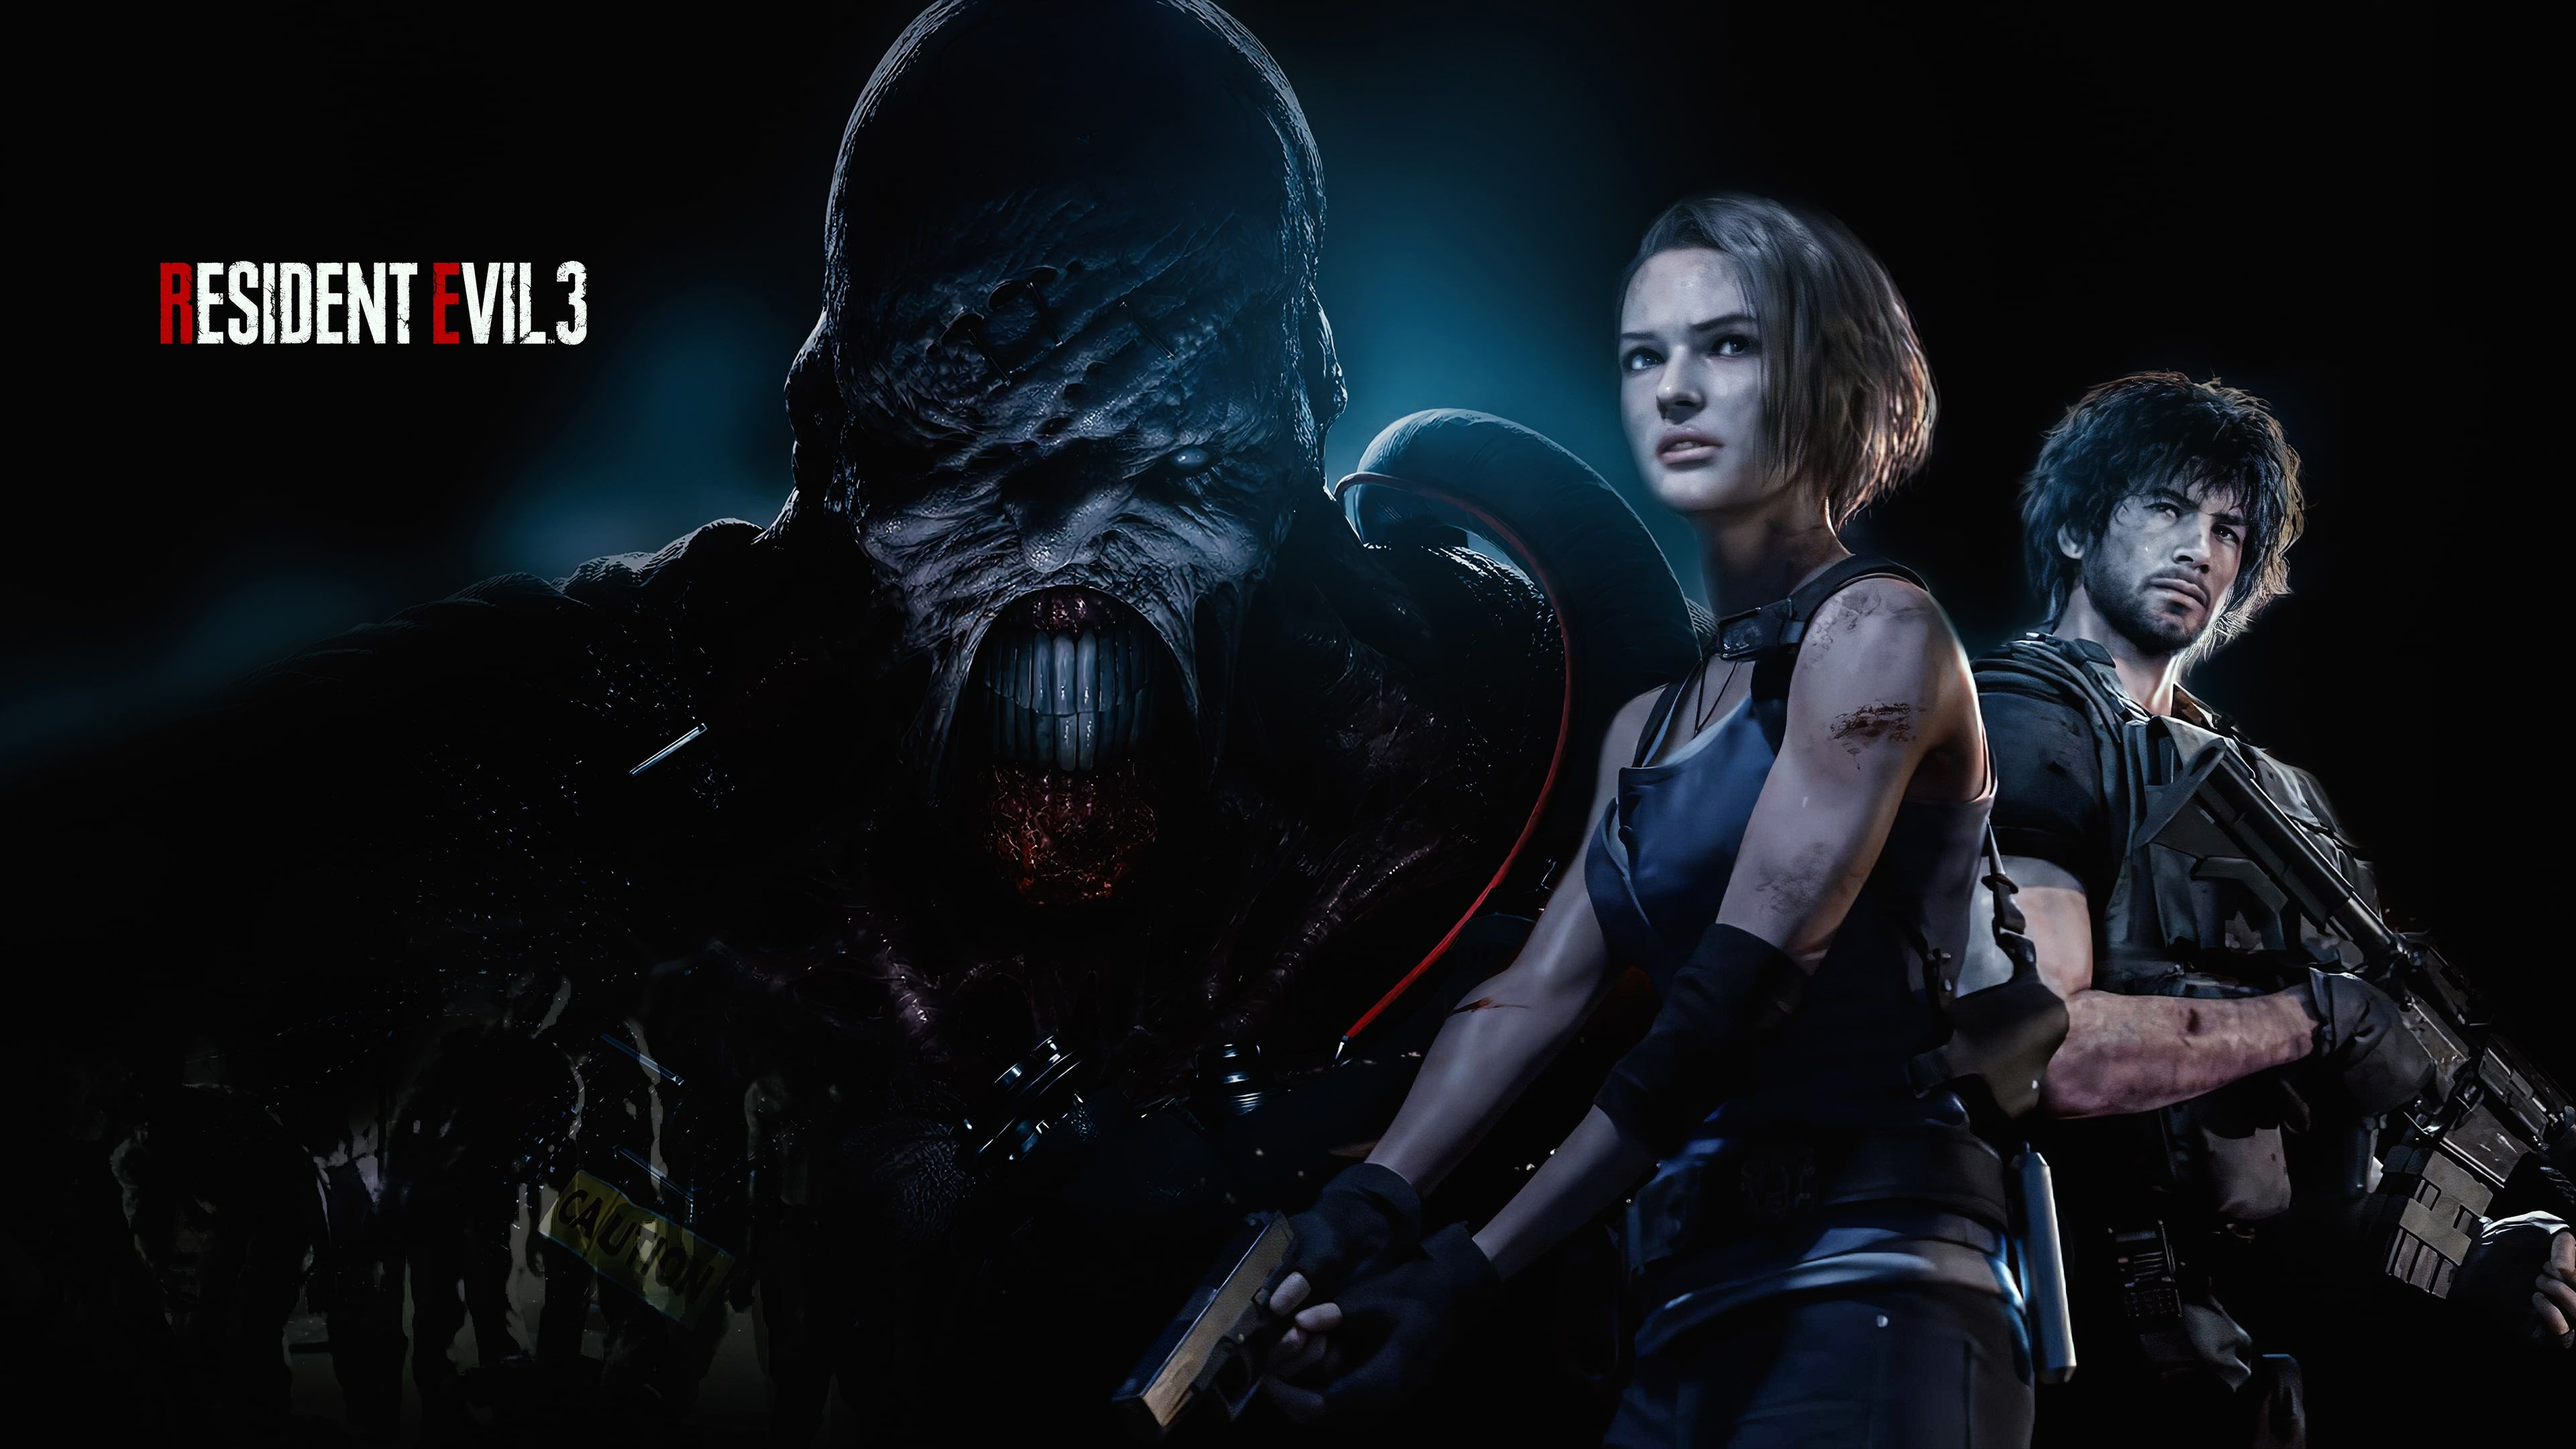 Video Game Resident Evil 3 2020 Resident Evil 3 Resident Evil Claire Redfield Hd Wallpaper Ba Resident Evil Resident Evil Claire Background Images Wallpapers